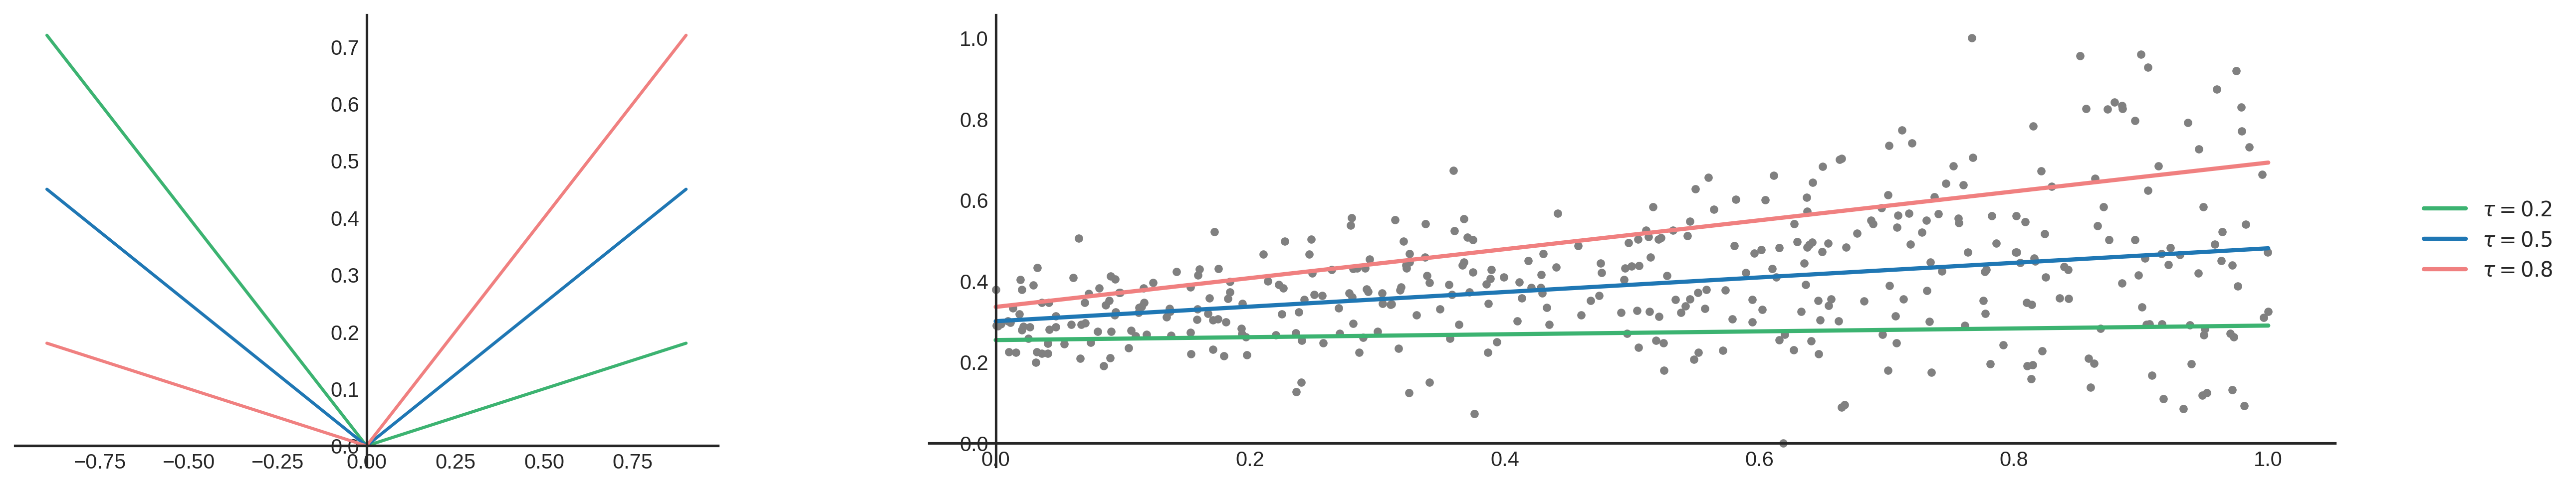 Figure 3: Plot that demonstrates the influence of the loss function on the fitted line.